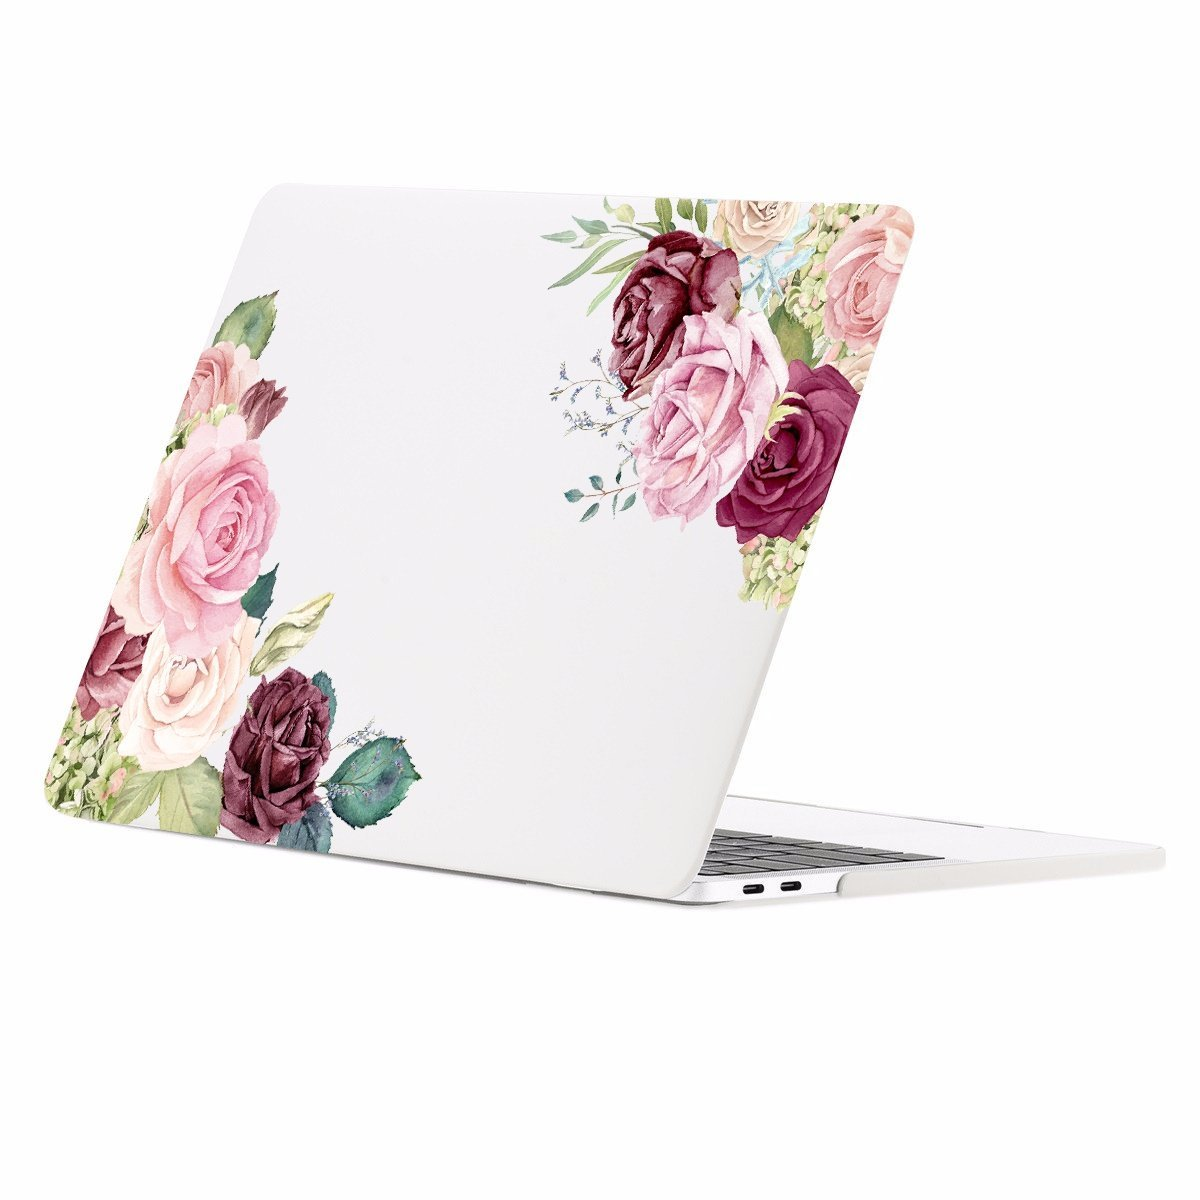 Yellow Black Sunflowers Gold Rose Gold Hard Plastic Glitter Case Cover For Apple Macbook Air 11 13 Macbook 12 Macbook Pro 13 15 Inch 2016 2017 With Retina Display Touch Bar